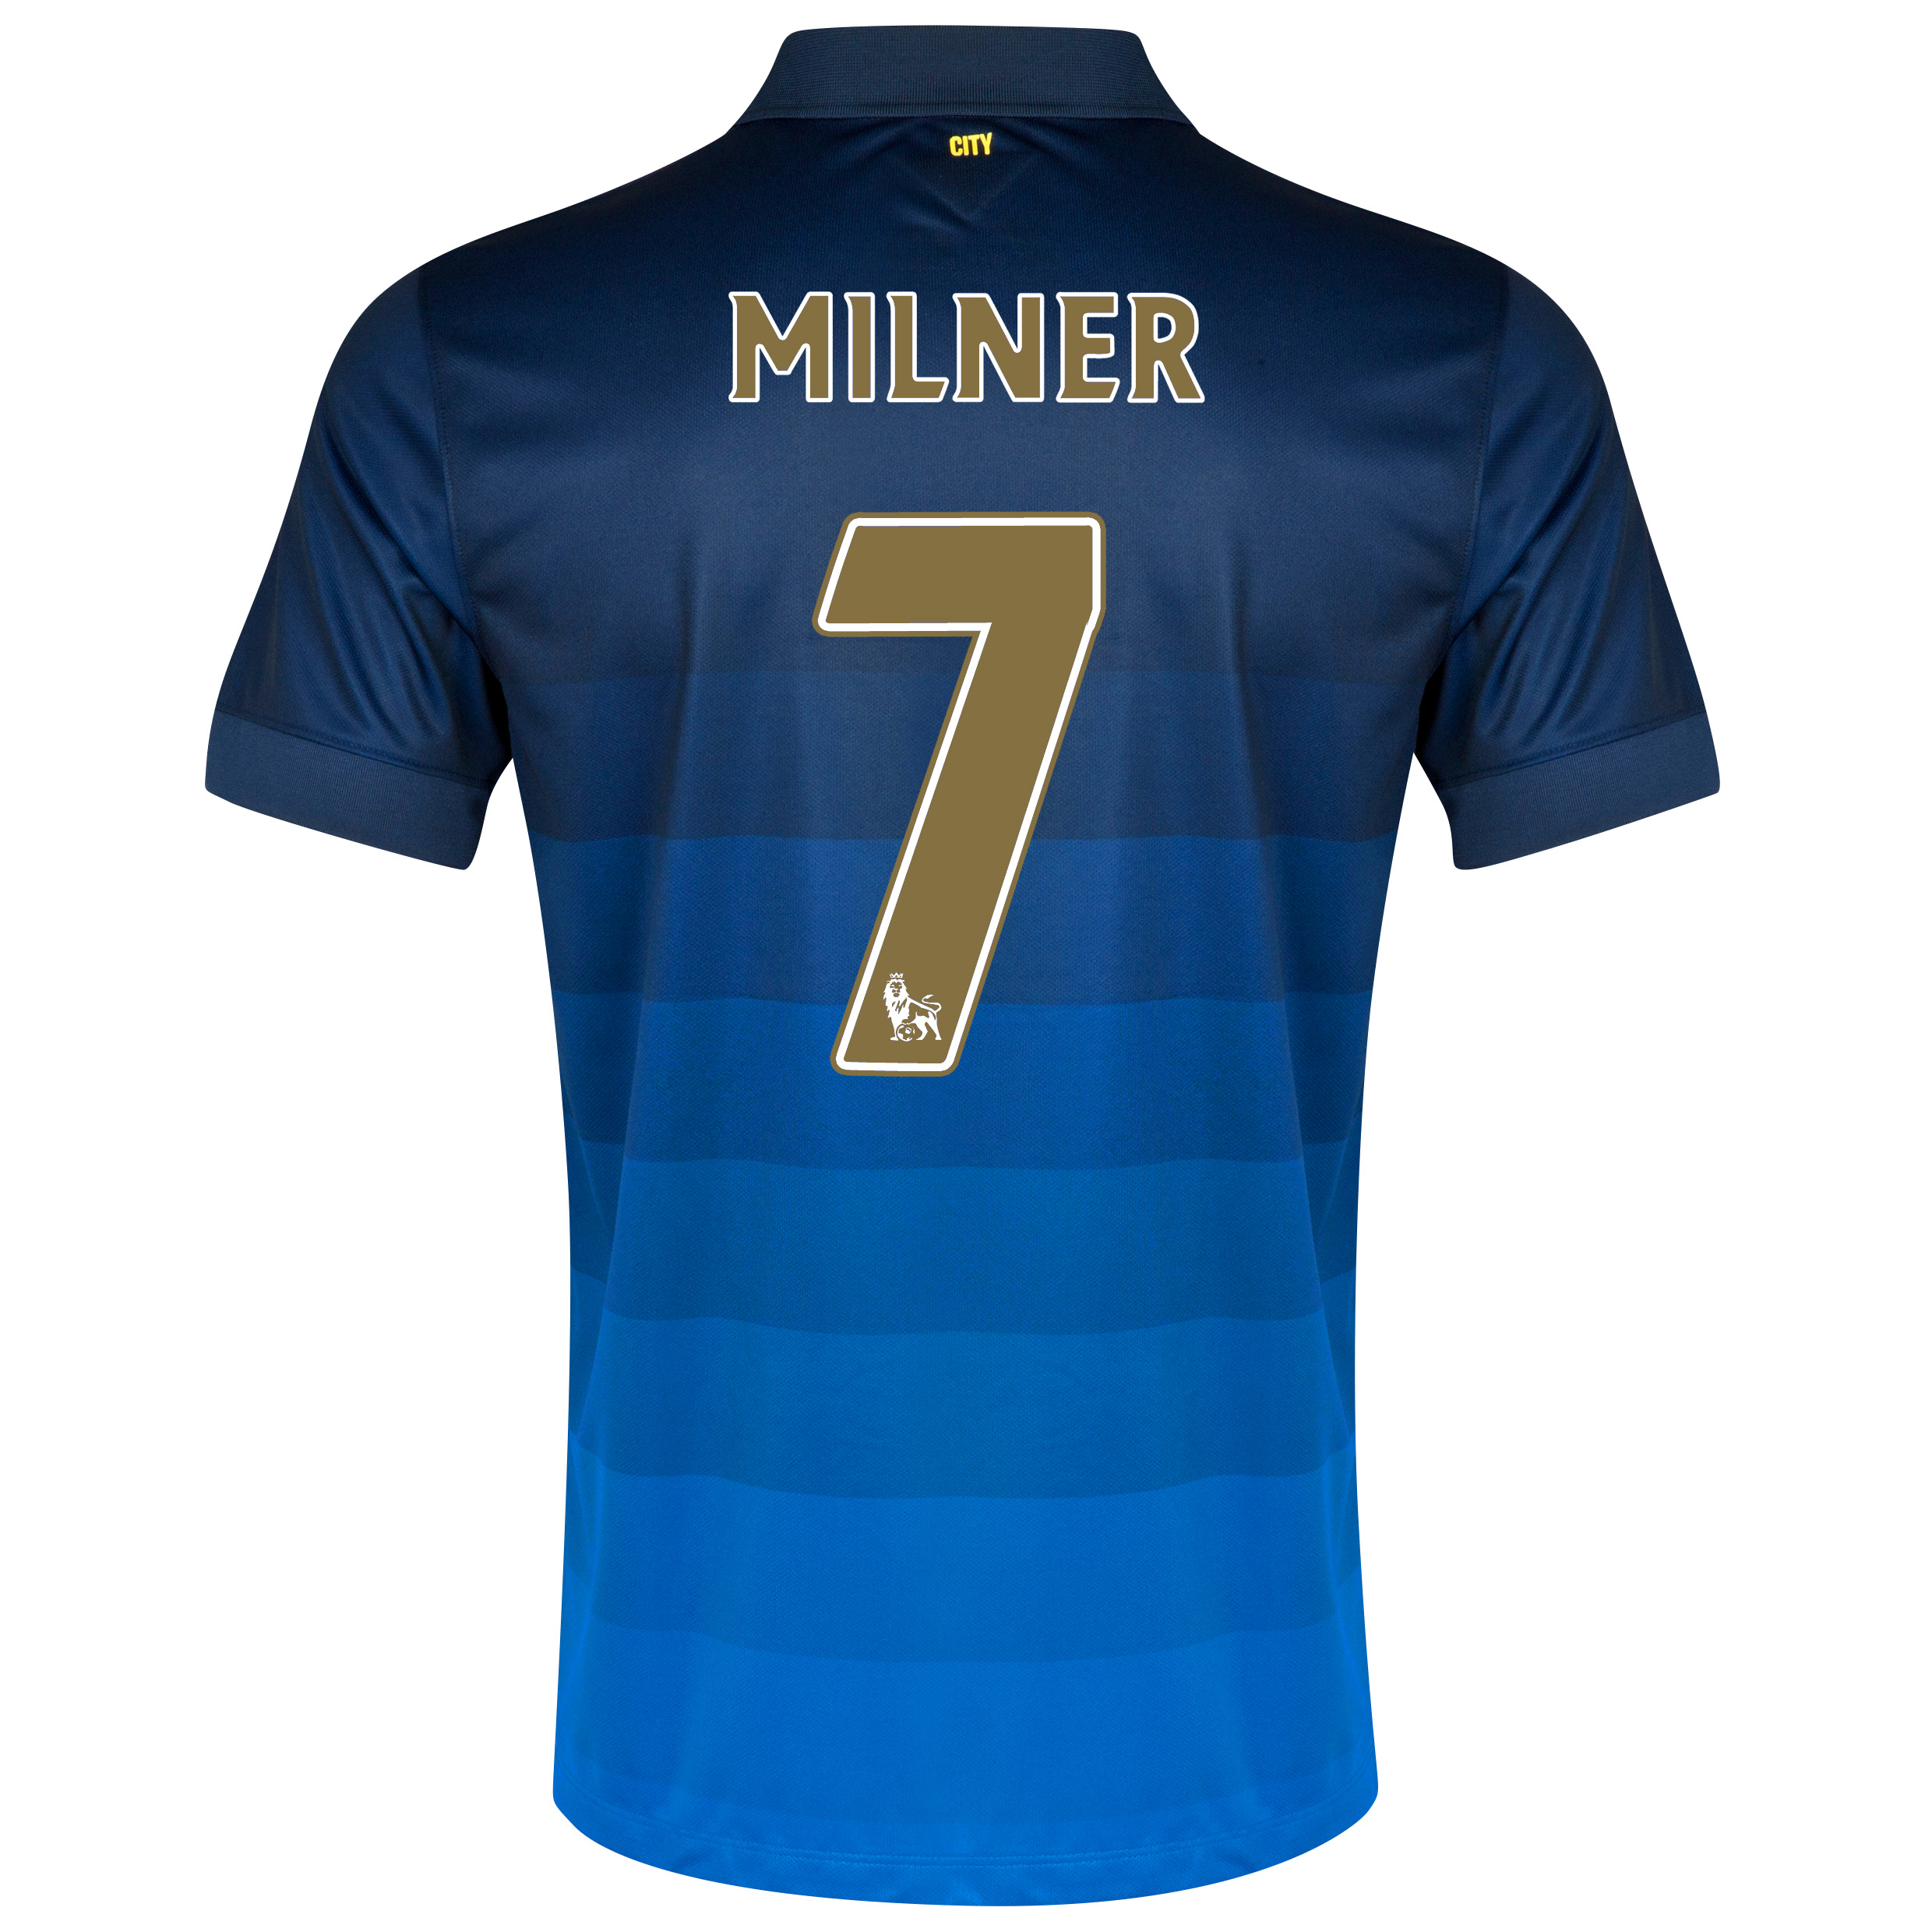 Manchester City Away Shirt 2014/15 with Milner 7 printing